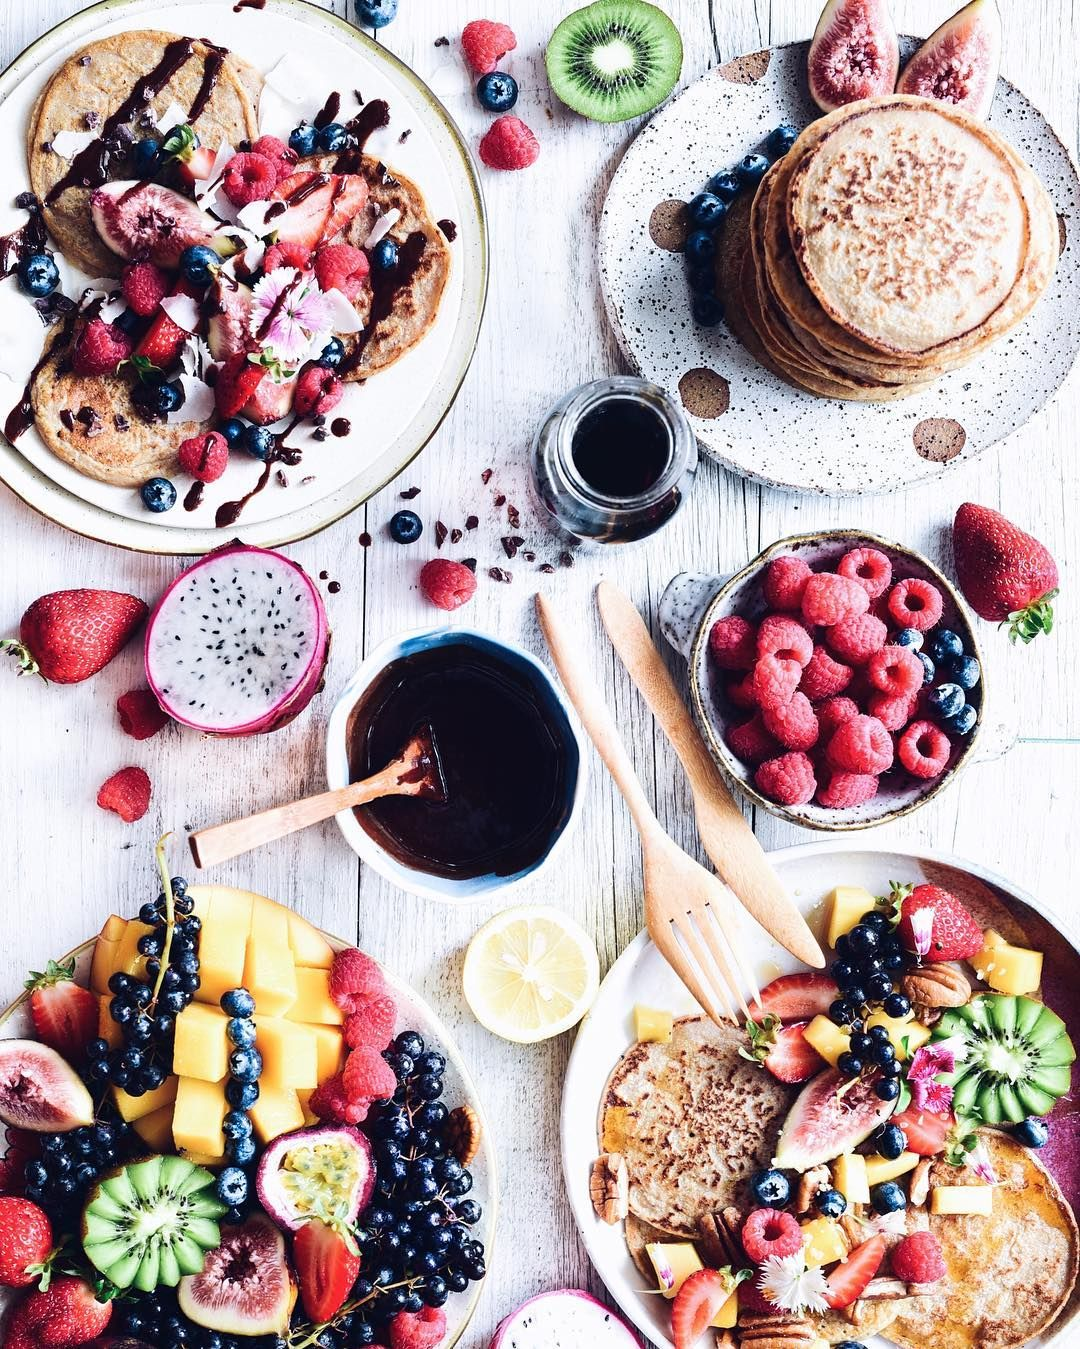 Happy Mother's Day  treat her to a big wholesome pancake spread    recipe on the @volcomwomens_oz blog!  #foodie_features by elsas_wholesomelife